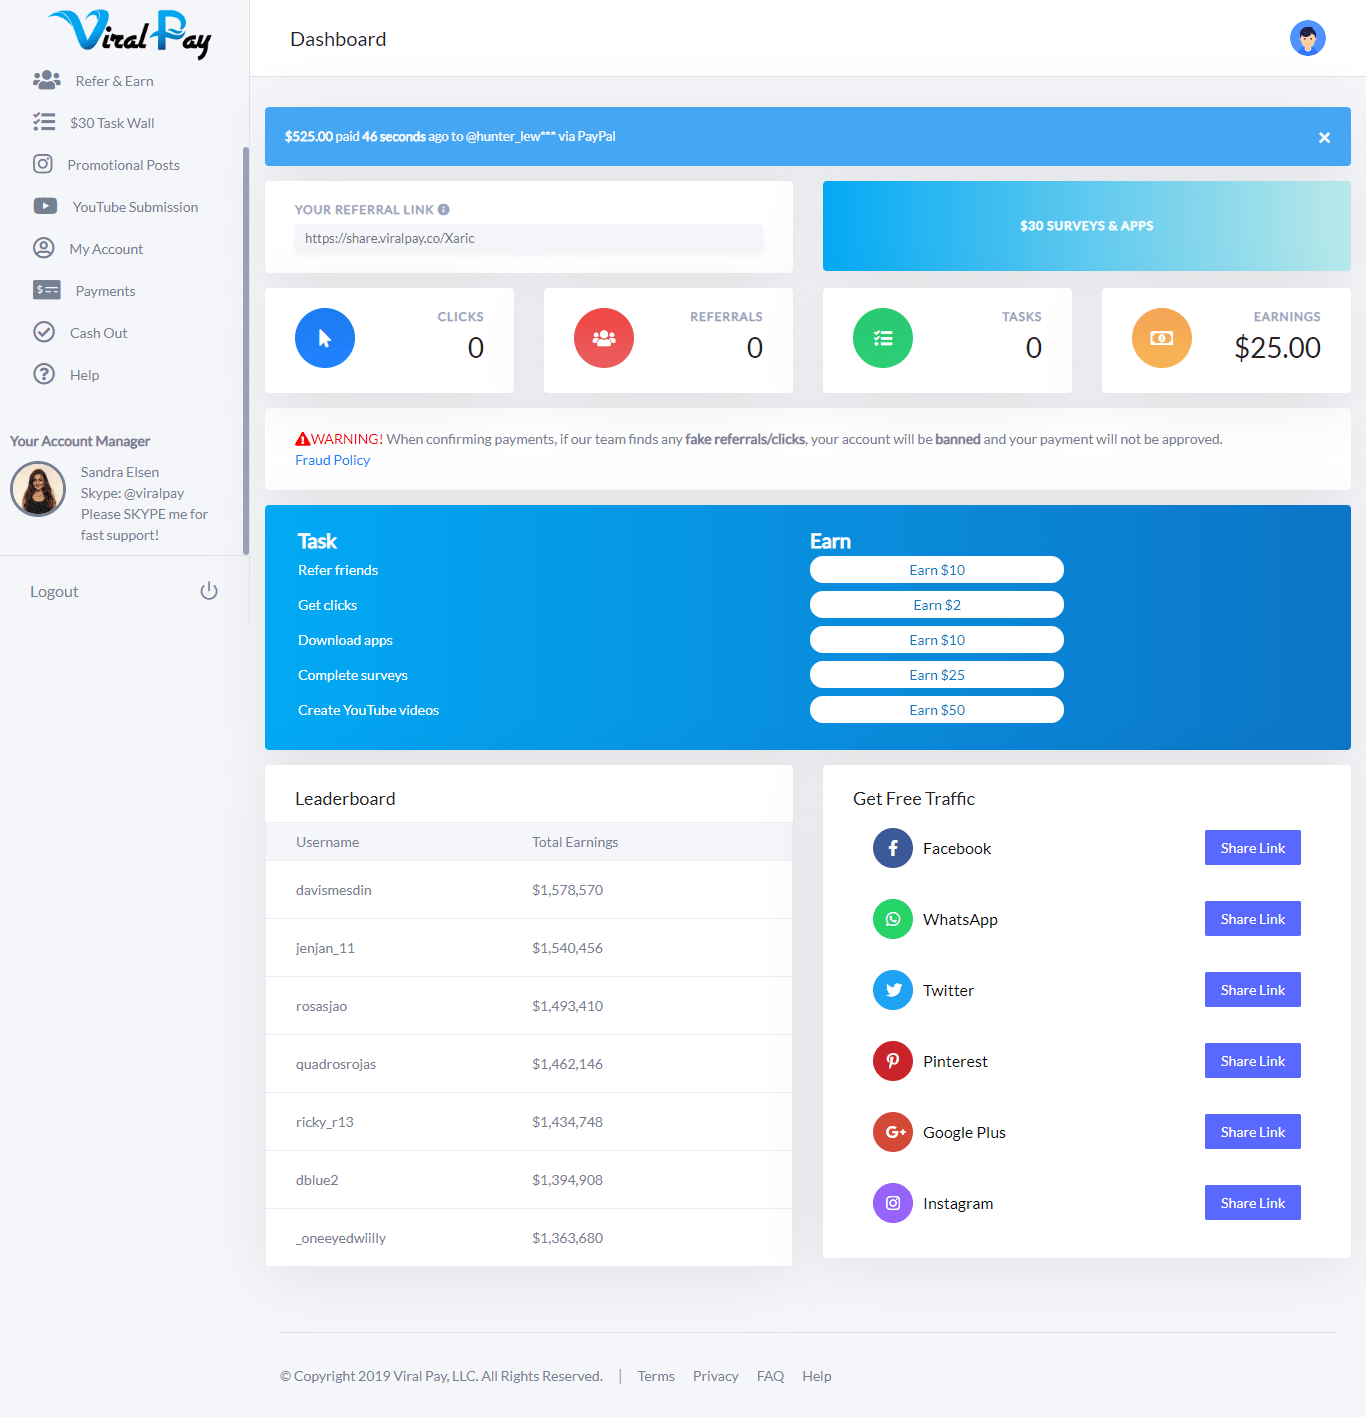 Viral Pay Dashboard Overview